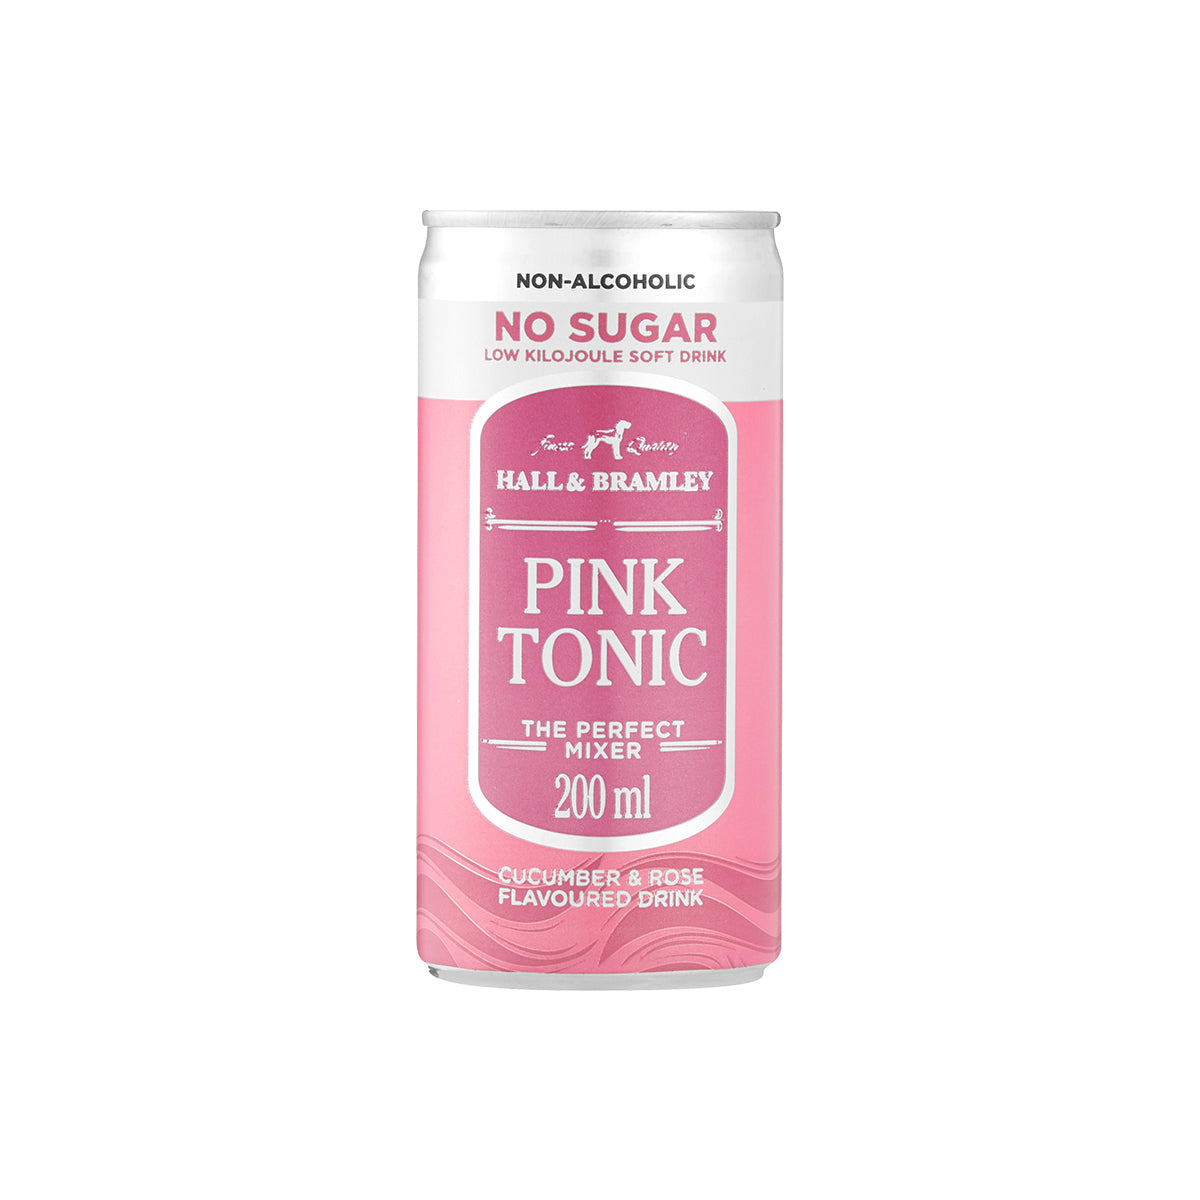 Hall & Bramley No Sugar Pink Tonic (6 x 200ml)